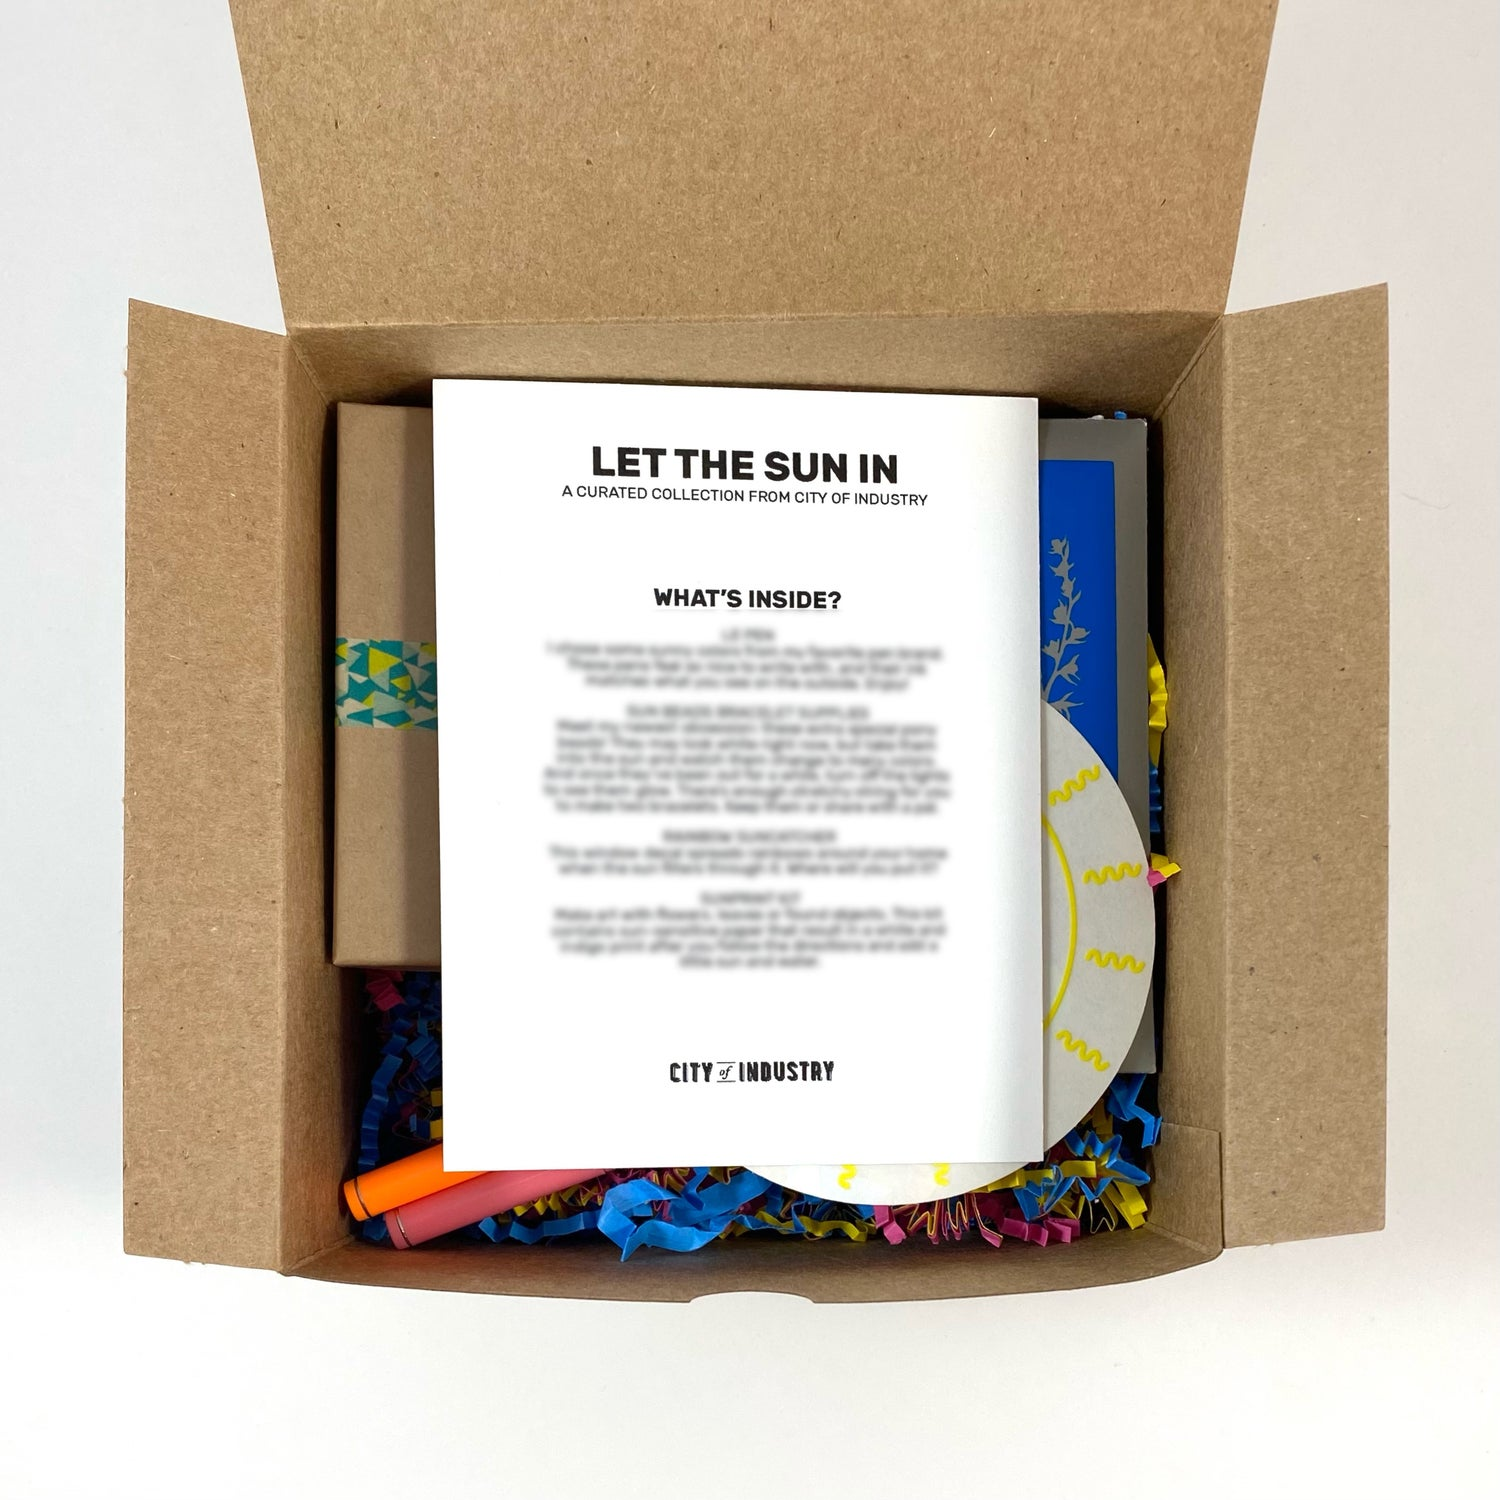 Image of Curated Collection: Let the Sun In